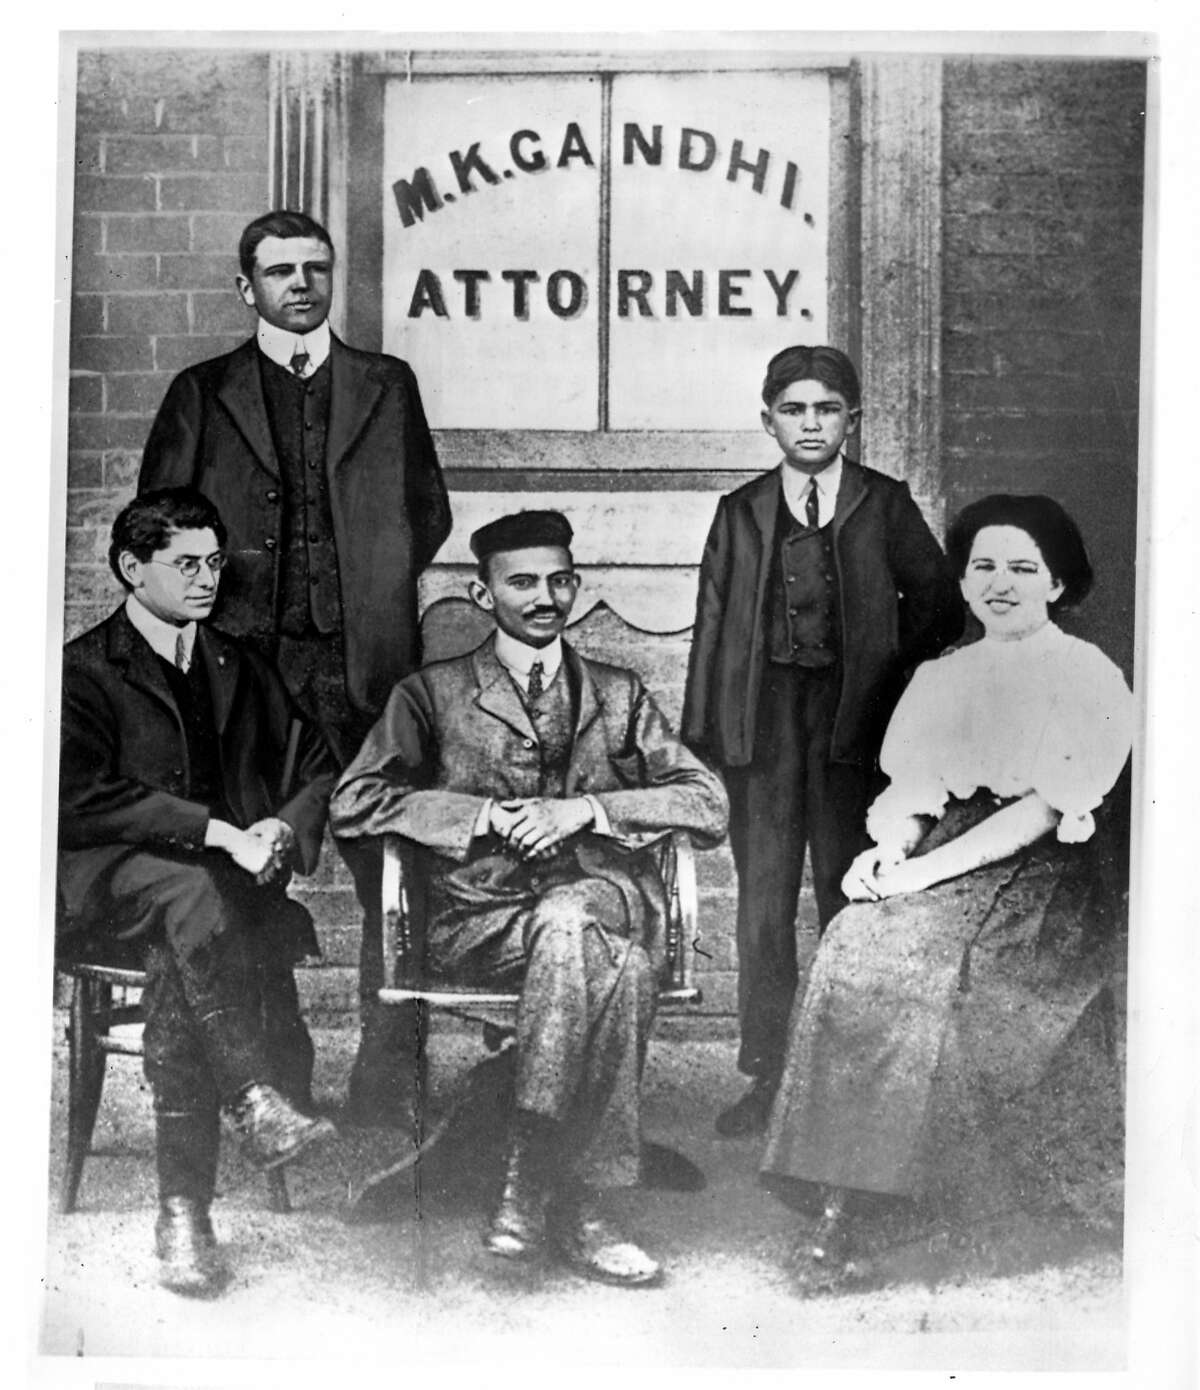 Mohandas K. Gandhi, center seated, was surrounded by workers in his law office in Johannesburg, South Africa, in a picture made about 1902. Gandhi spent most of his 20 years there protesting treatment of his fellow Indian countrymen by British colonists.